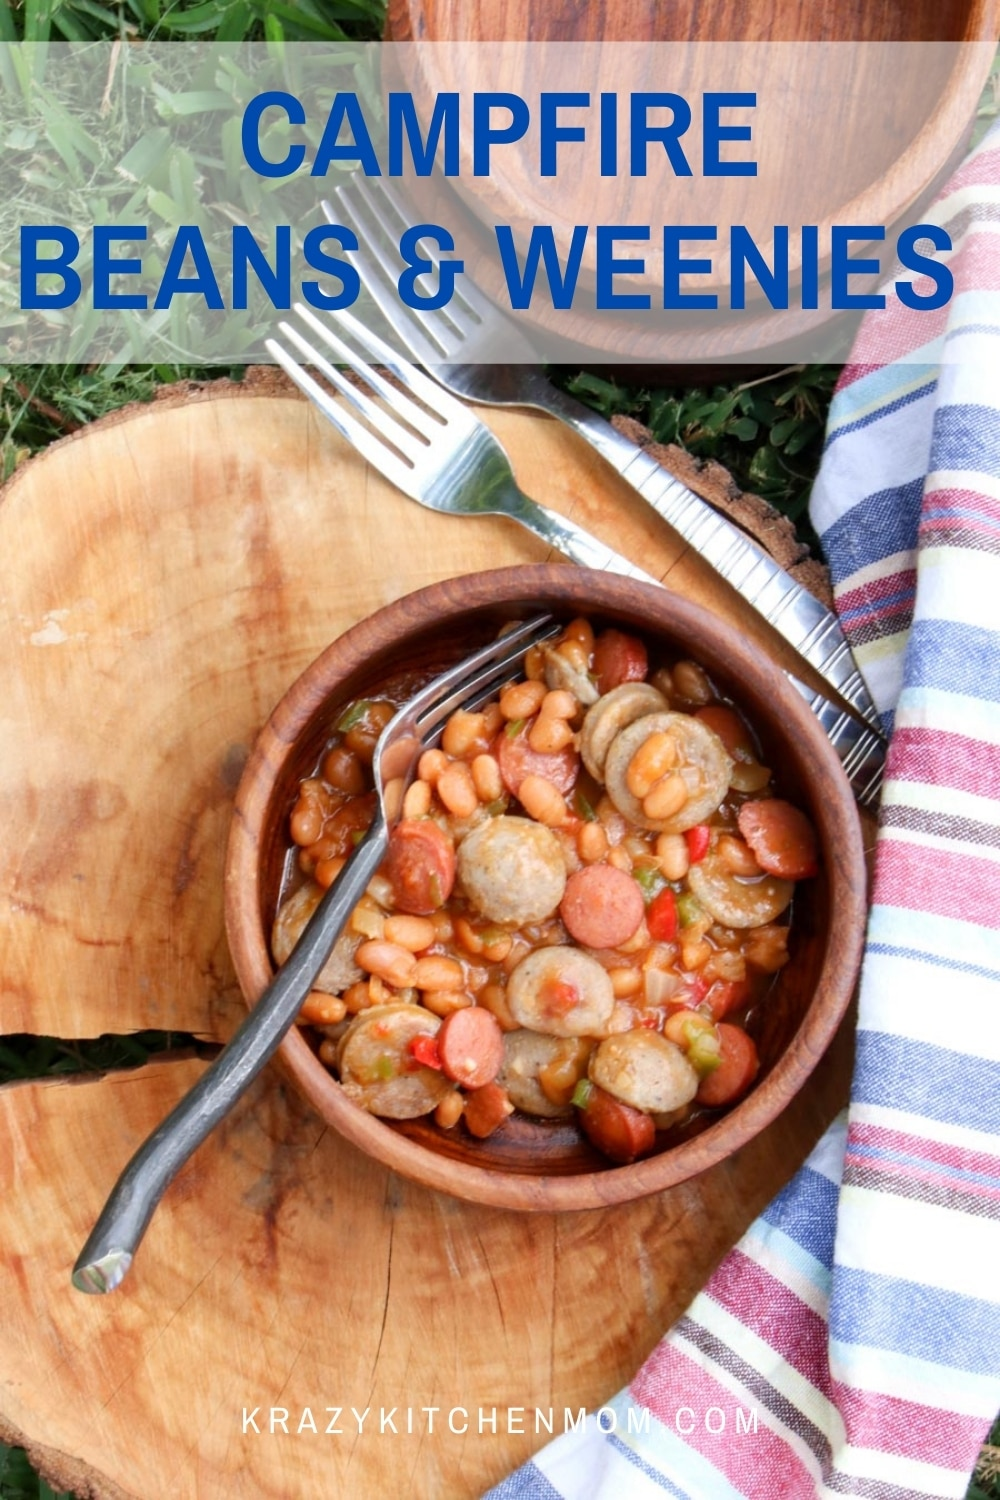 Summertime campfires and grills are heating up. Whip us a hearty family-friendly skillet of beans and weenies. via @krazykitchenmom